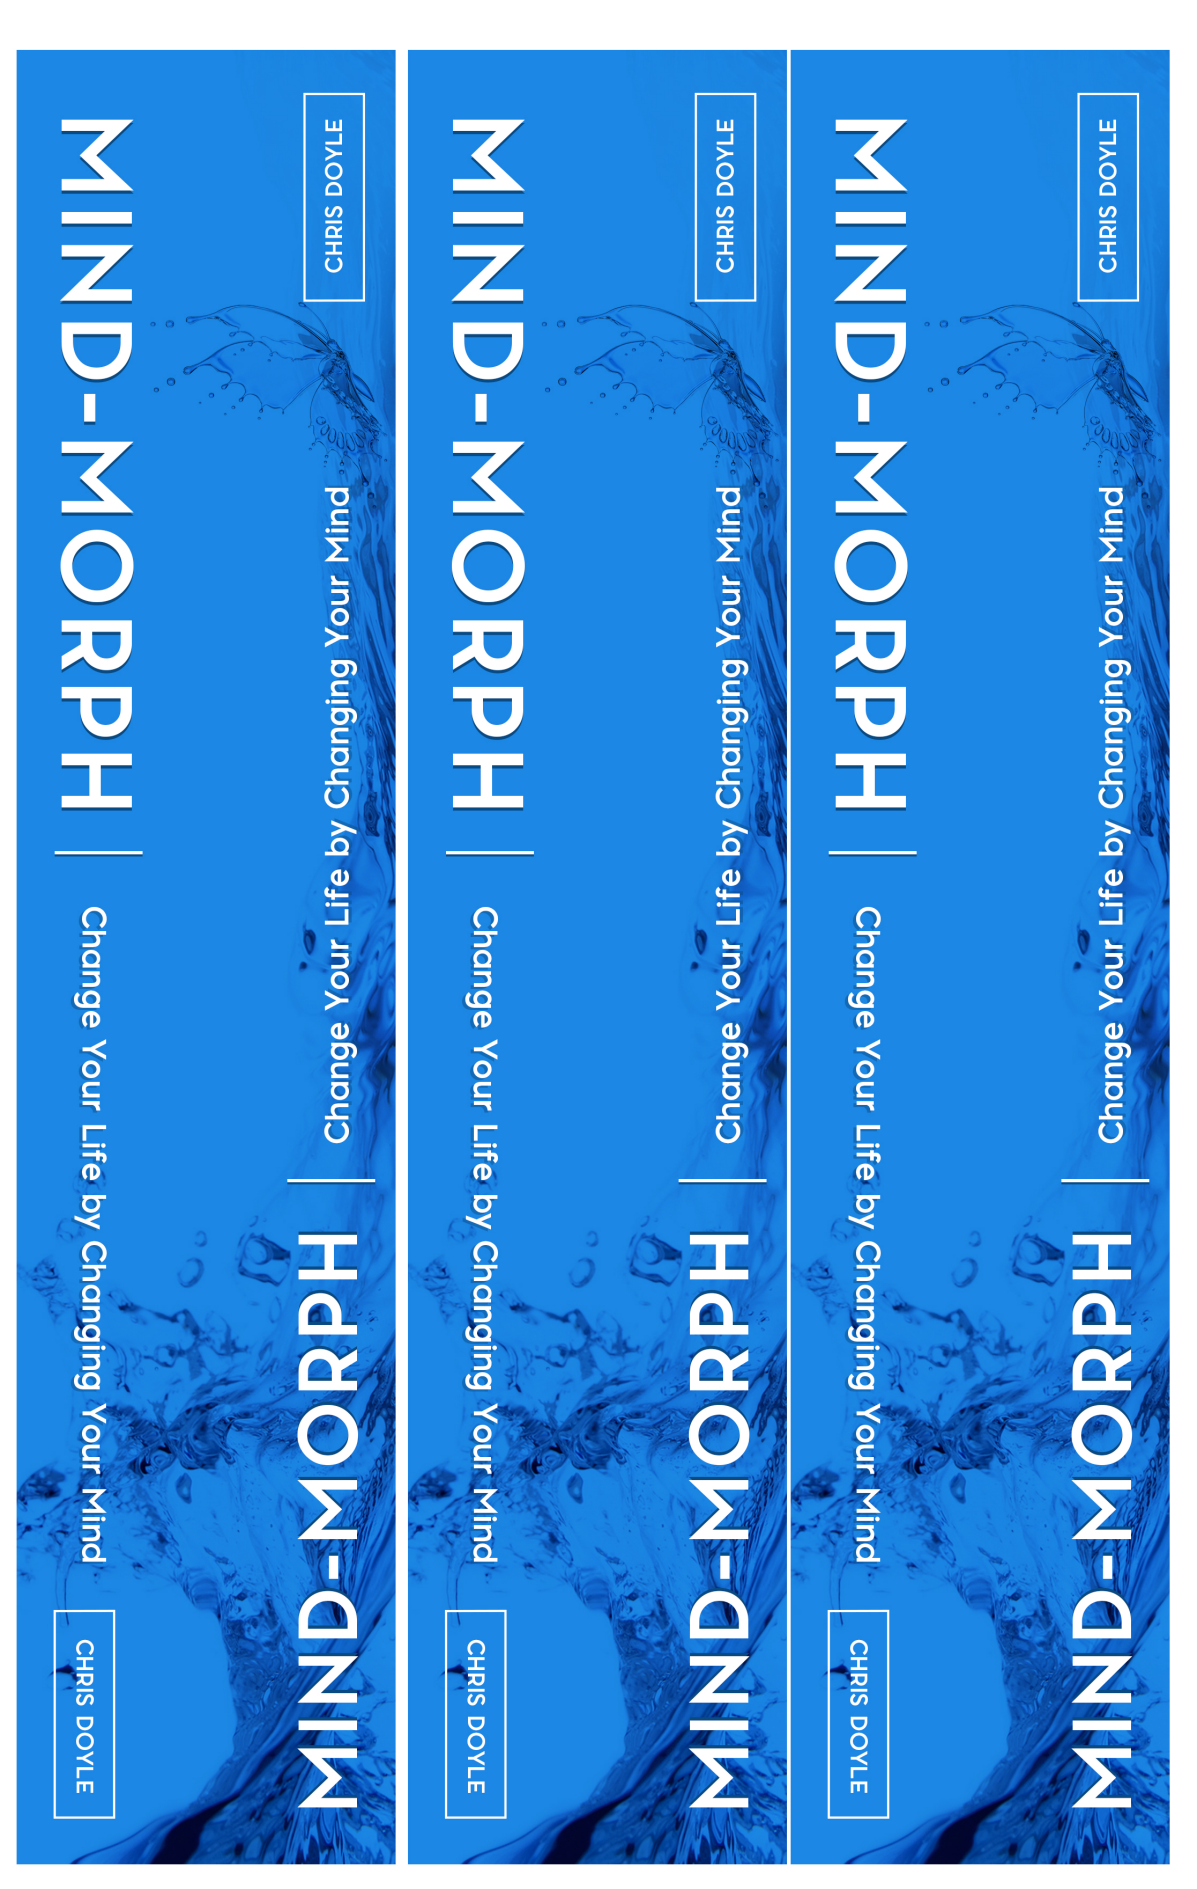 Binder cover, binder spine and curriculum cover page